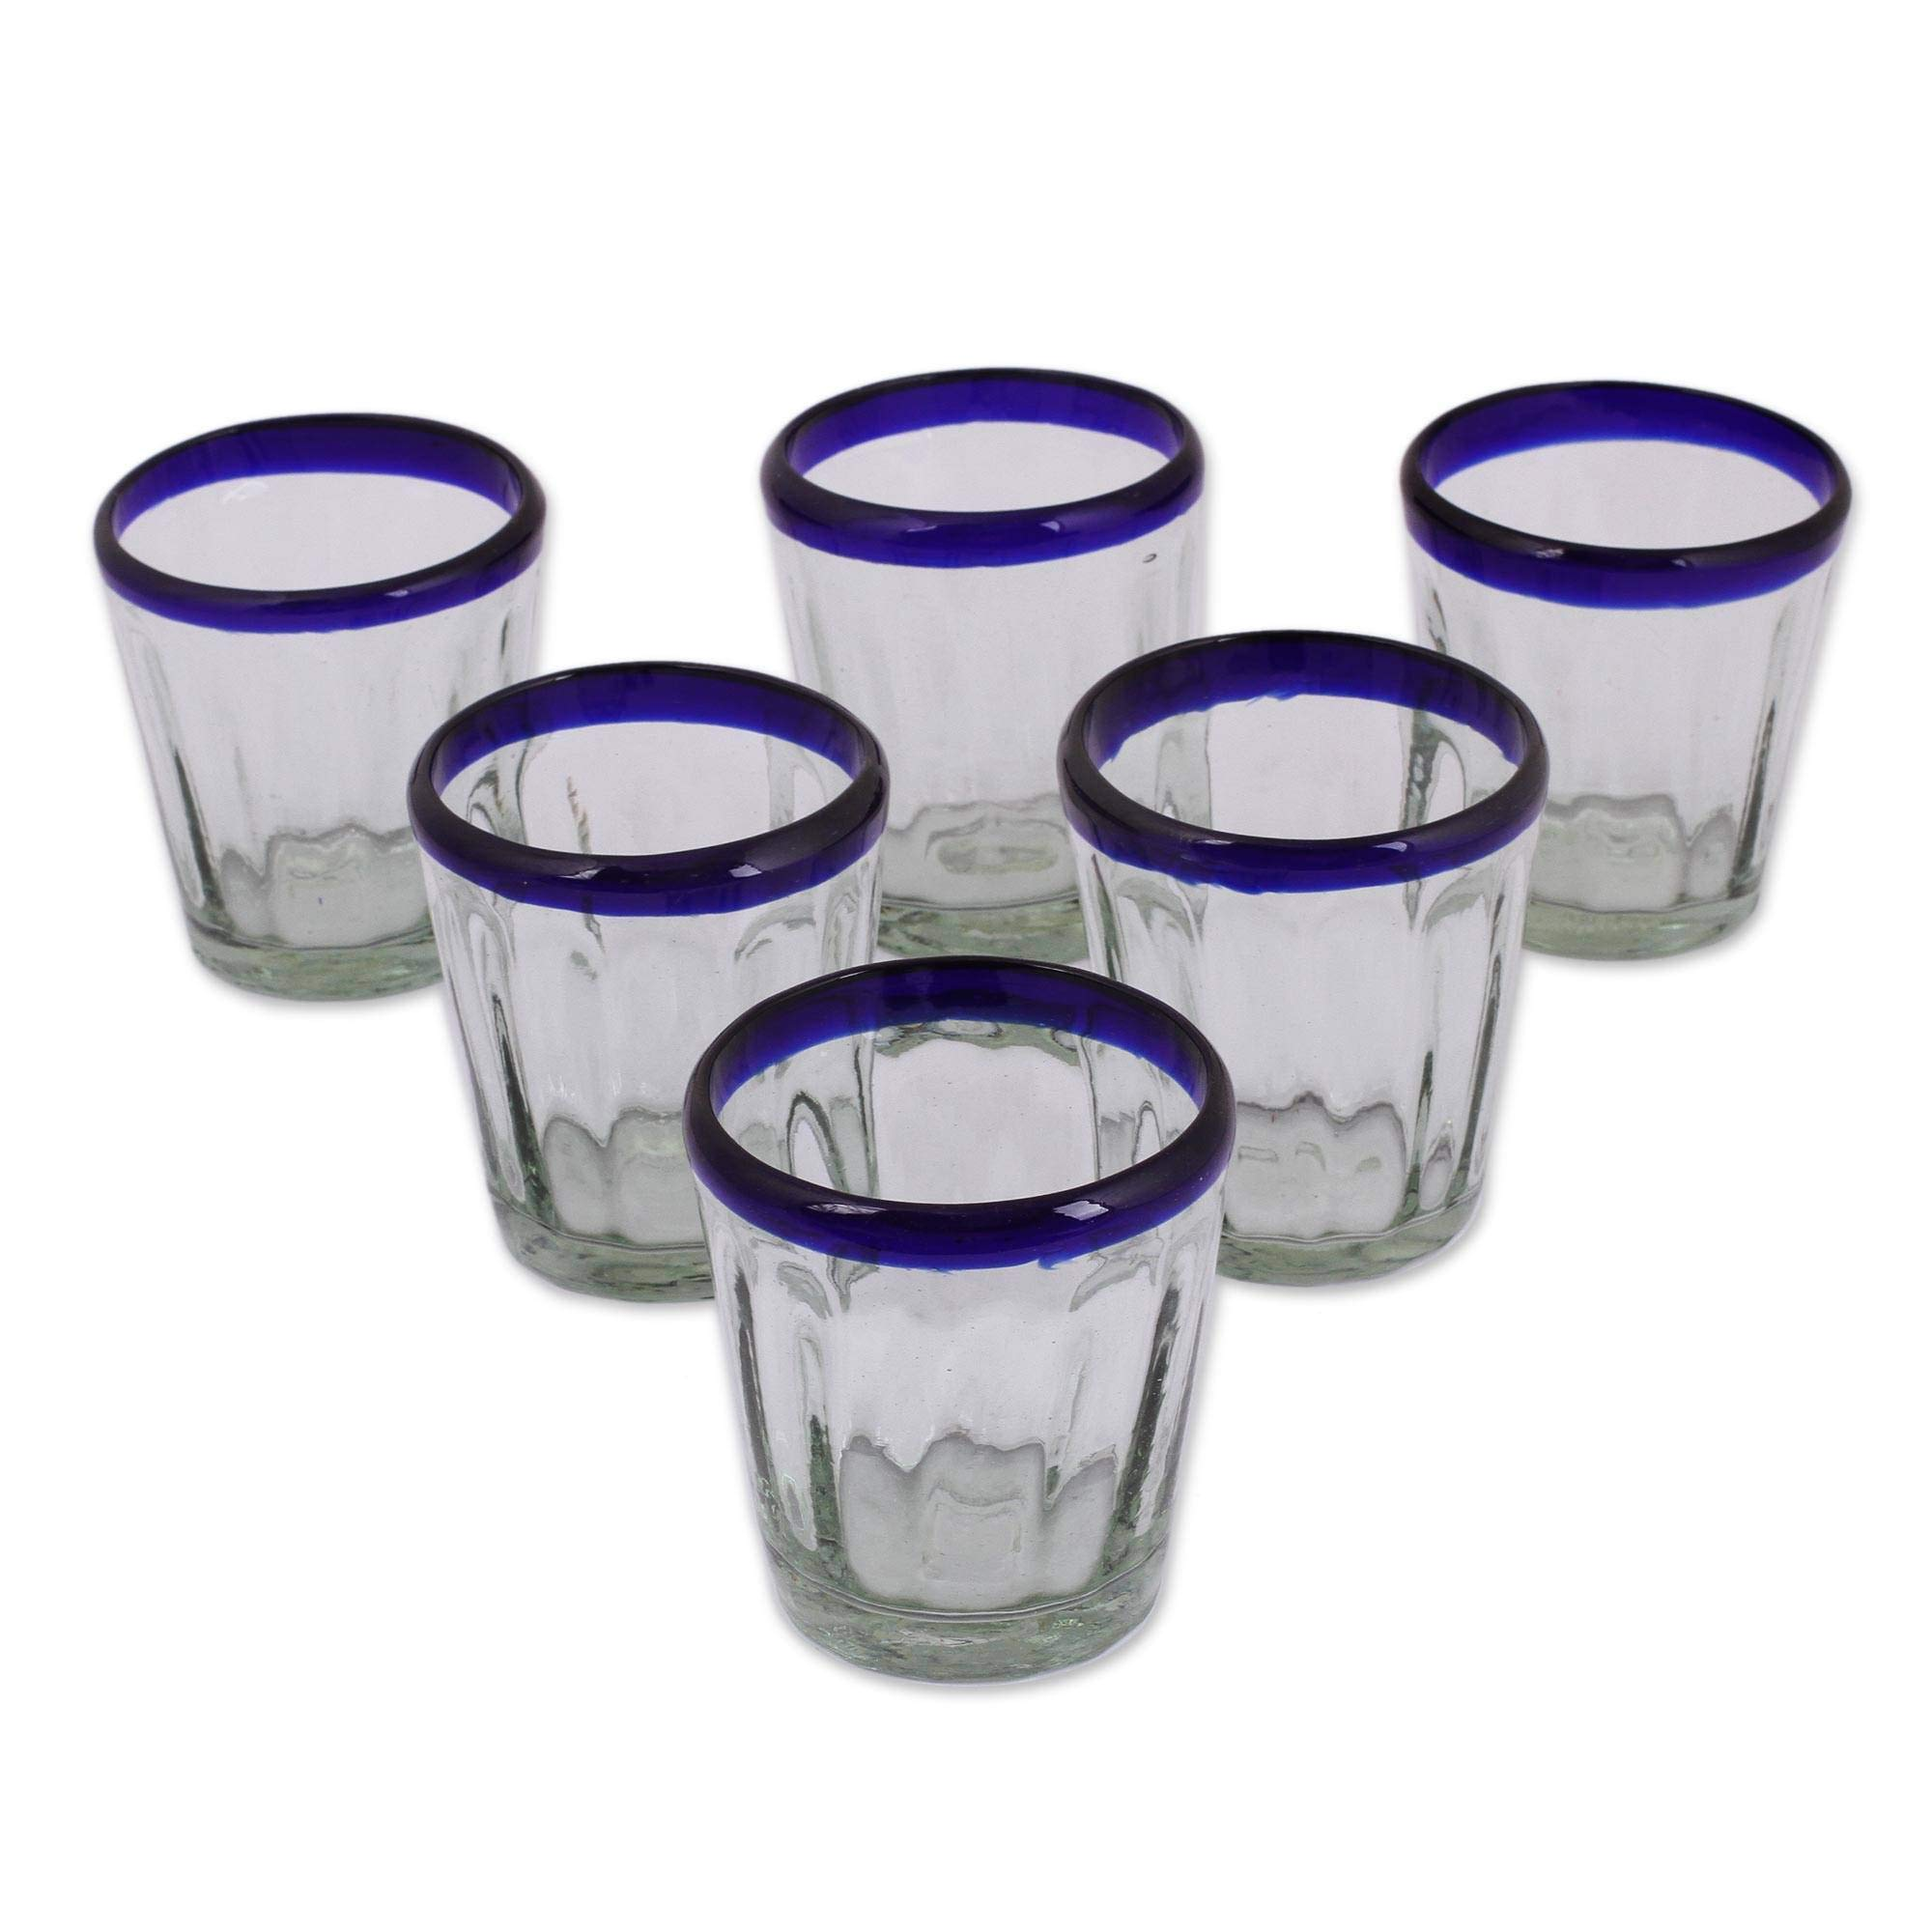 NOVICA Hand Blown Blue Rim Recycled Glass Juice Glasses, 10 oz 'Short Cobalt Groove' (set of 6)